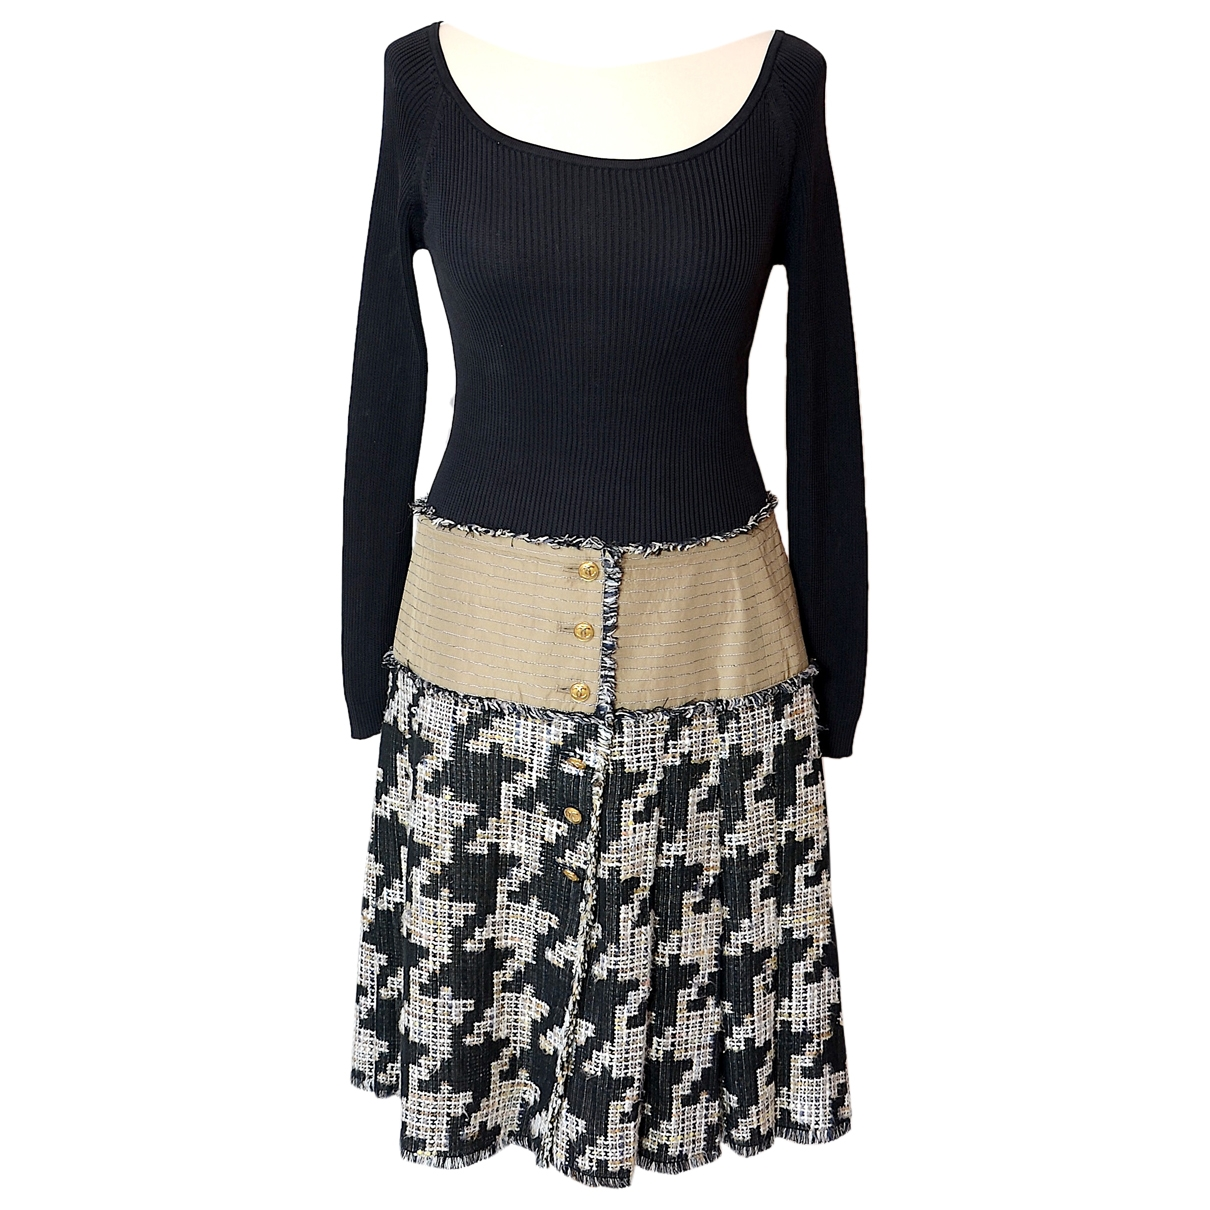 Chanel \N Black Cotton skirt for Women 40 FR